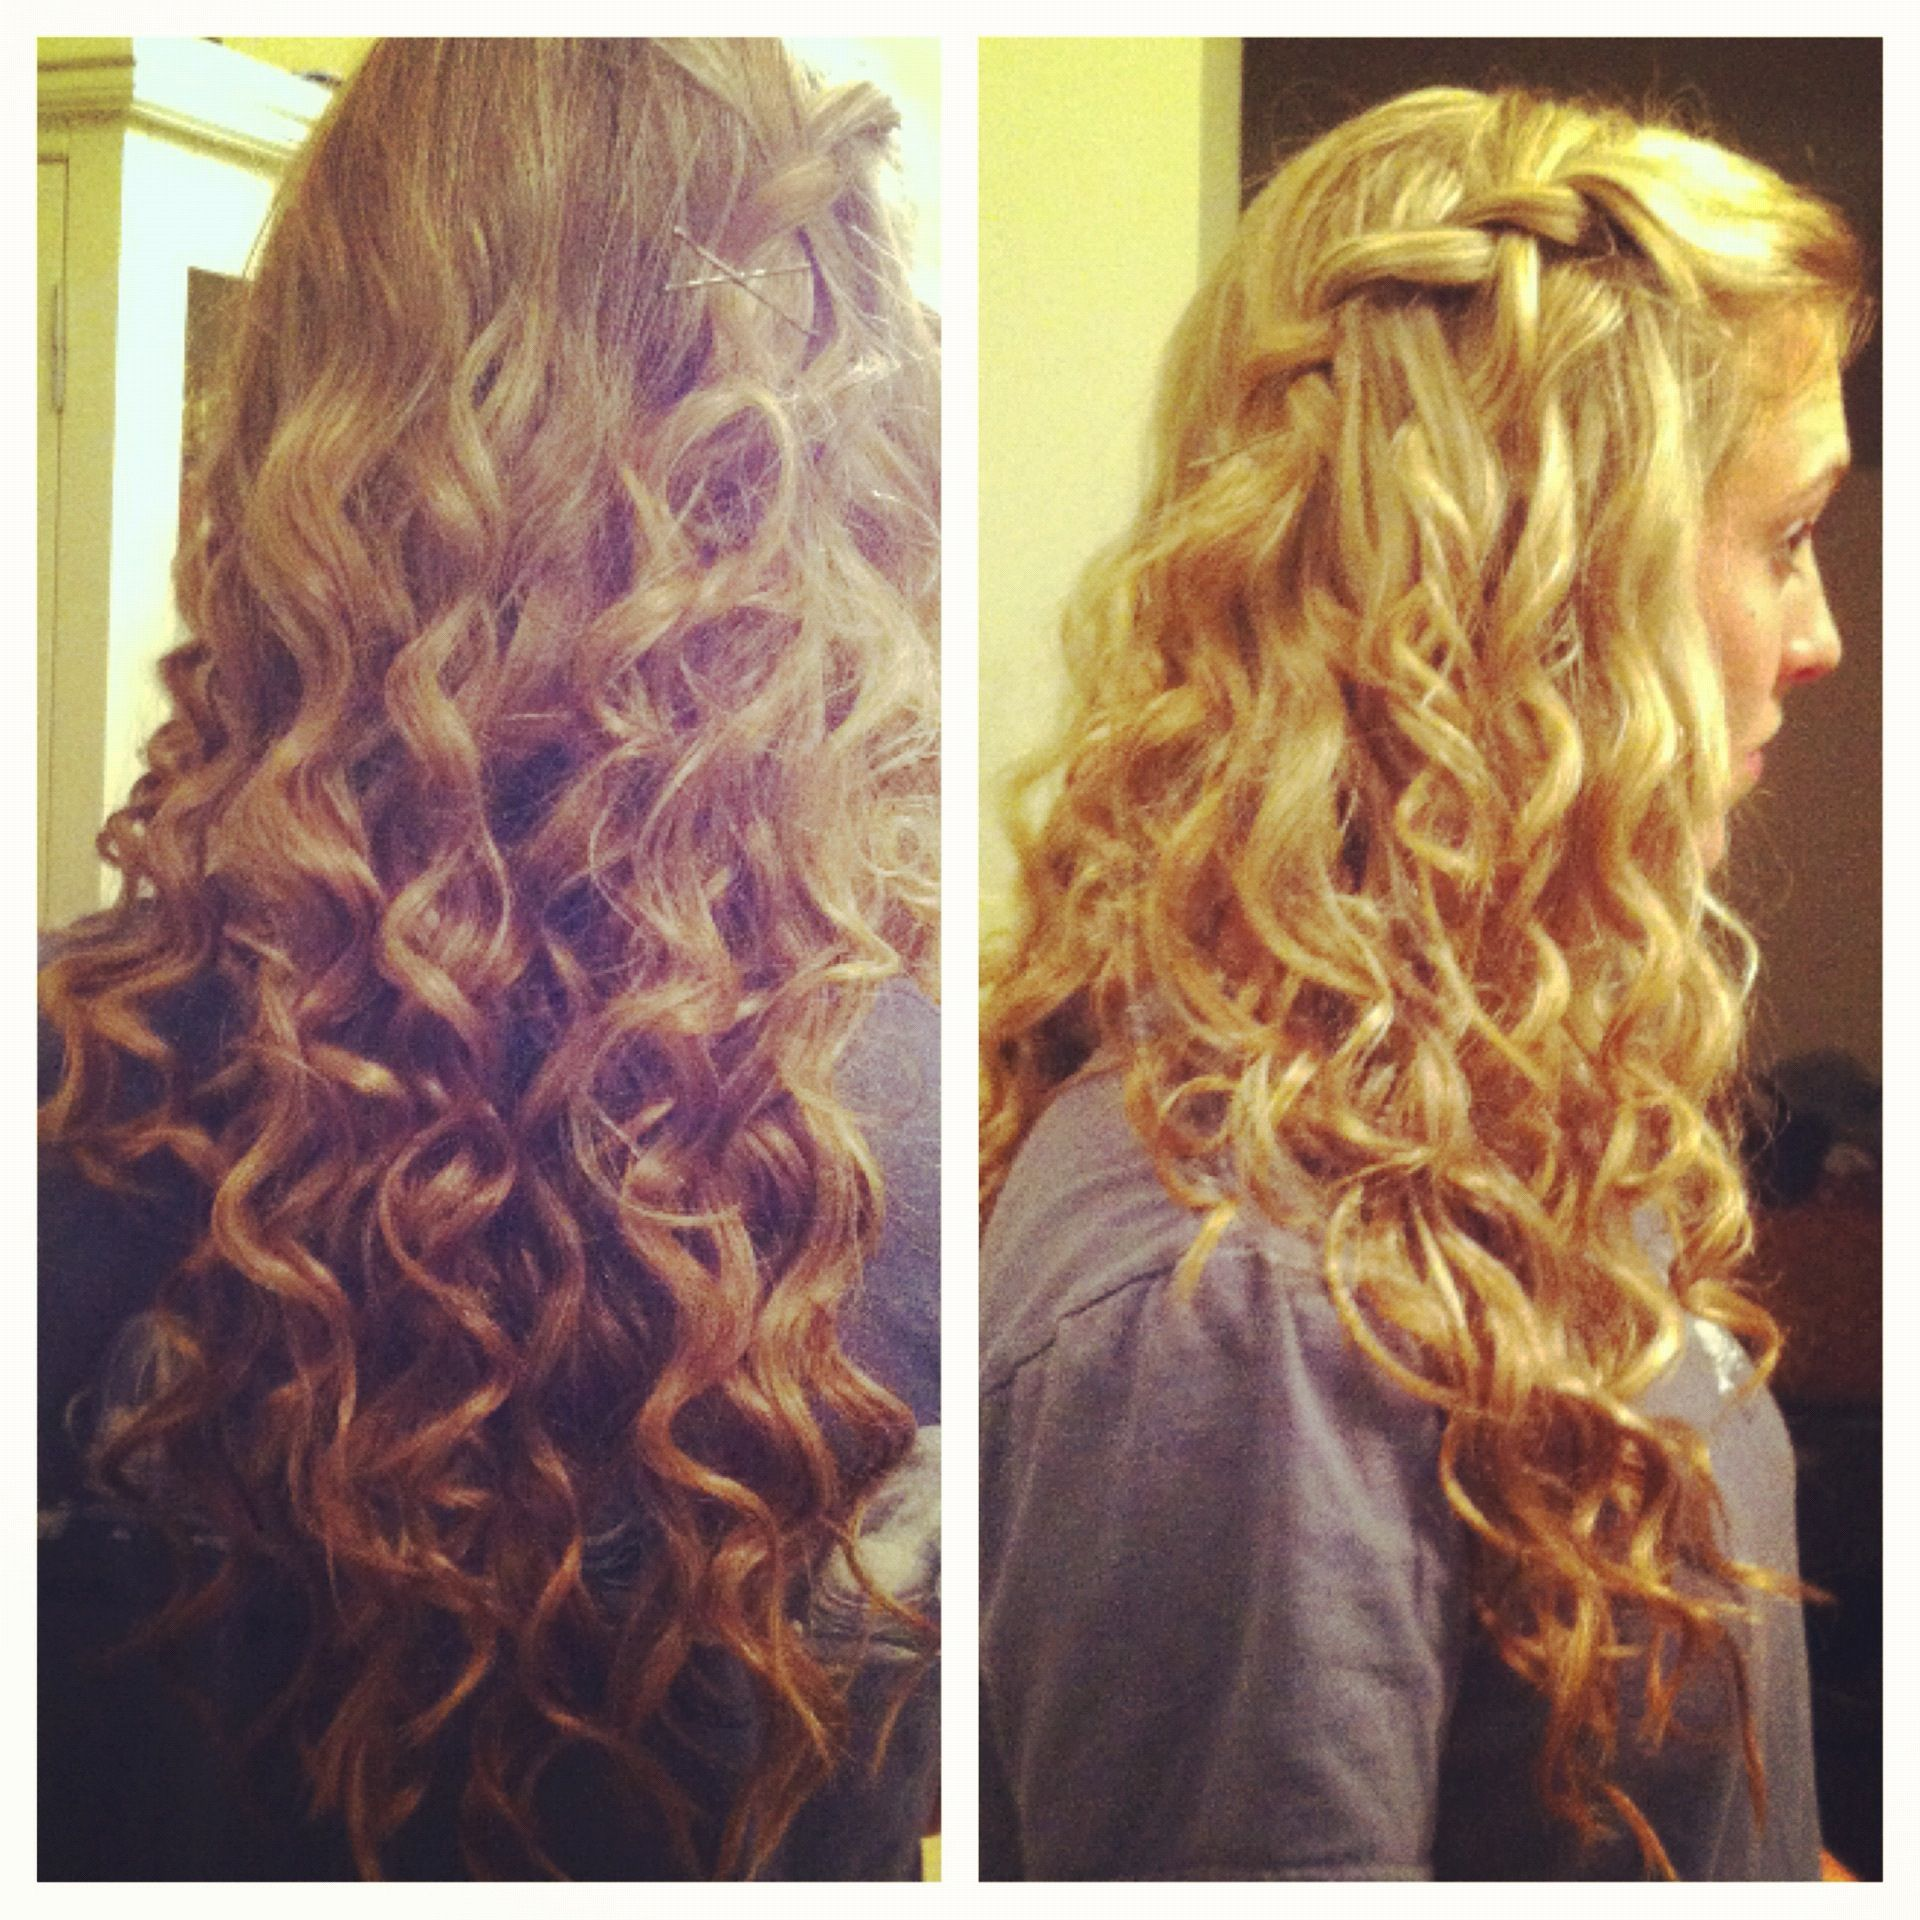 Curley hair with waterfall braid wish i knew how to get curls like